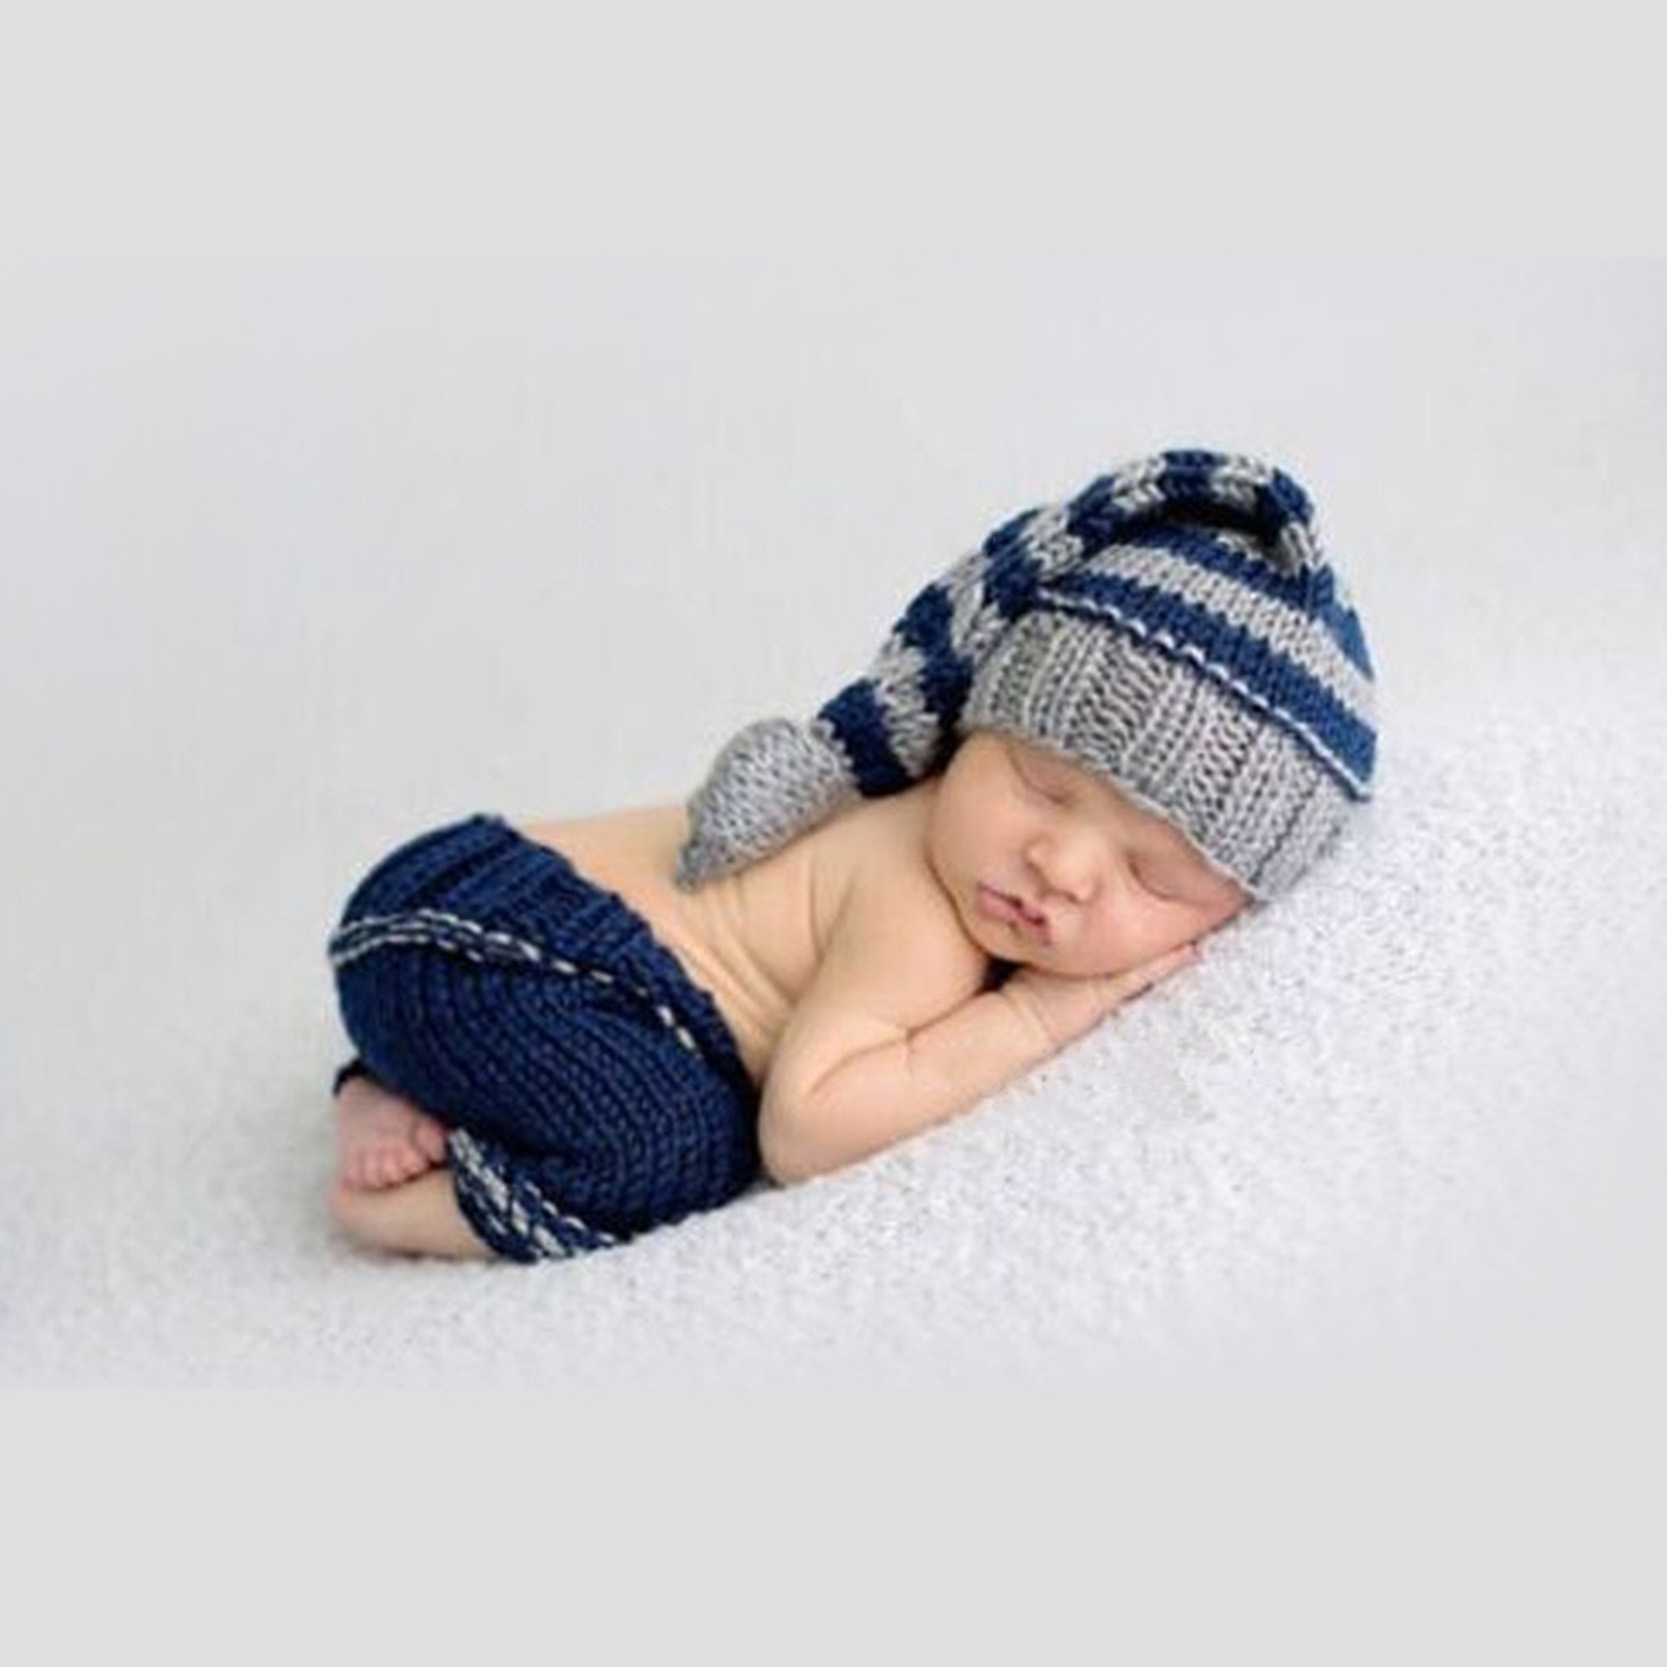 f60d5b211 US $7.04 31% OFF|Newborn Baby Photography Props Soft Handmade Knit Cute Hat  And Pants Set For Baby Boy Girl 0 6 Months Accessories-in Hats & Caps from  ...